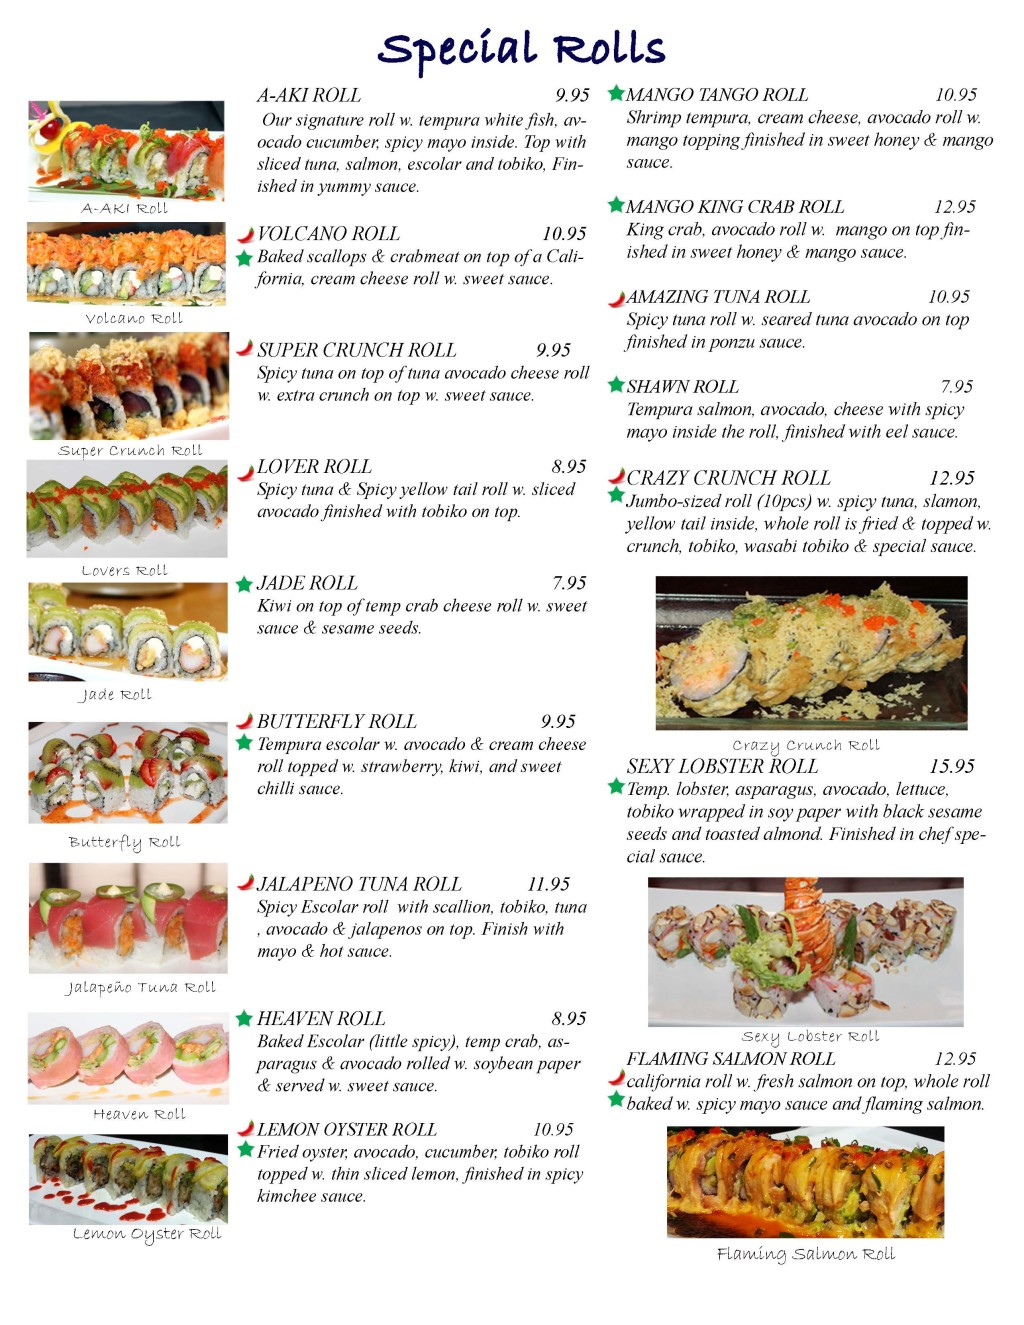 http://a-akisushi.com/wp-content/uploads/2016/03/newest-page-4Sushi-special-roll-small-1024x1325.jpg